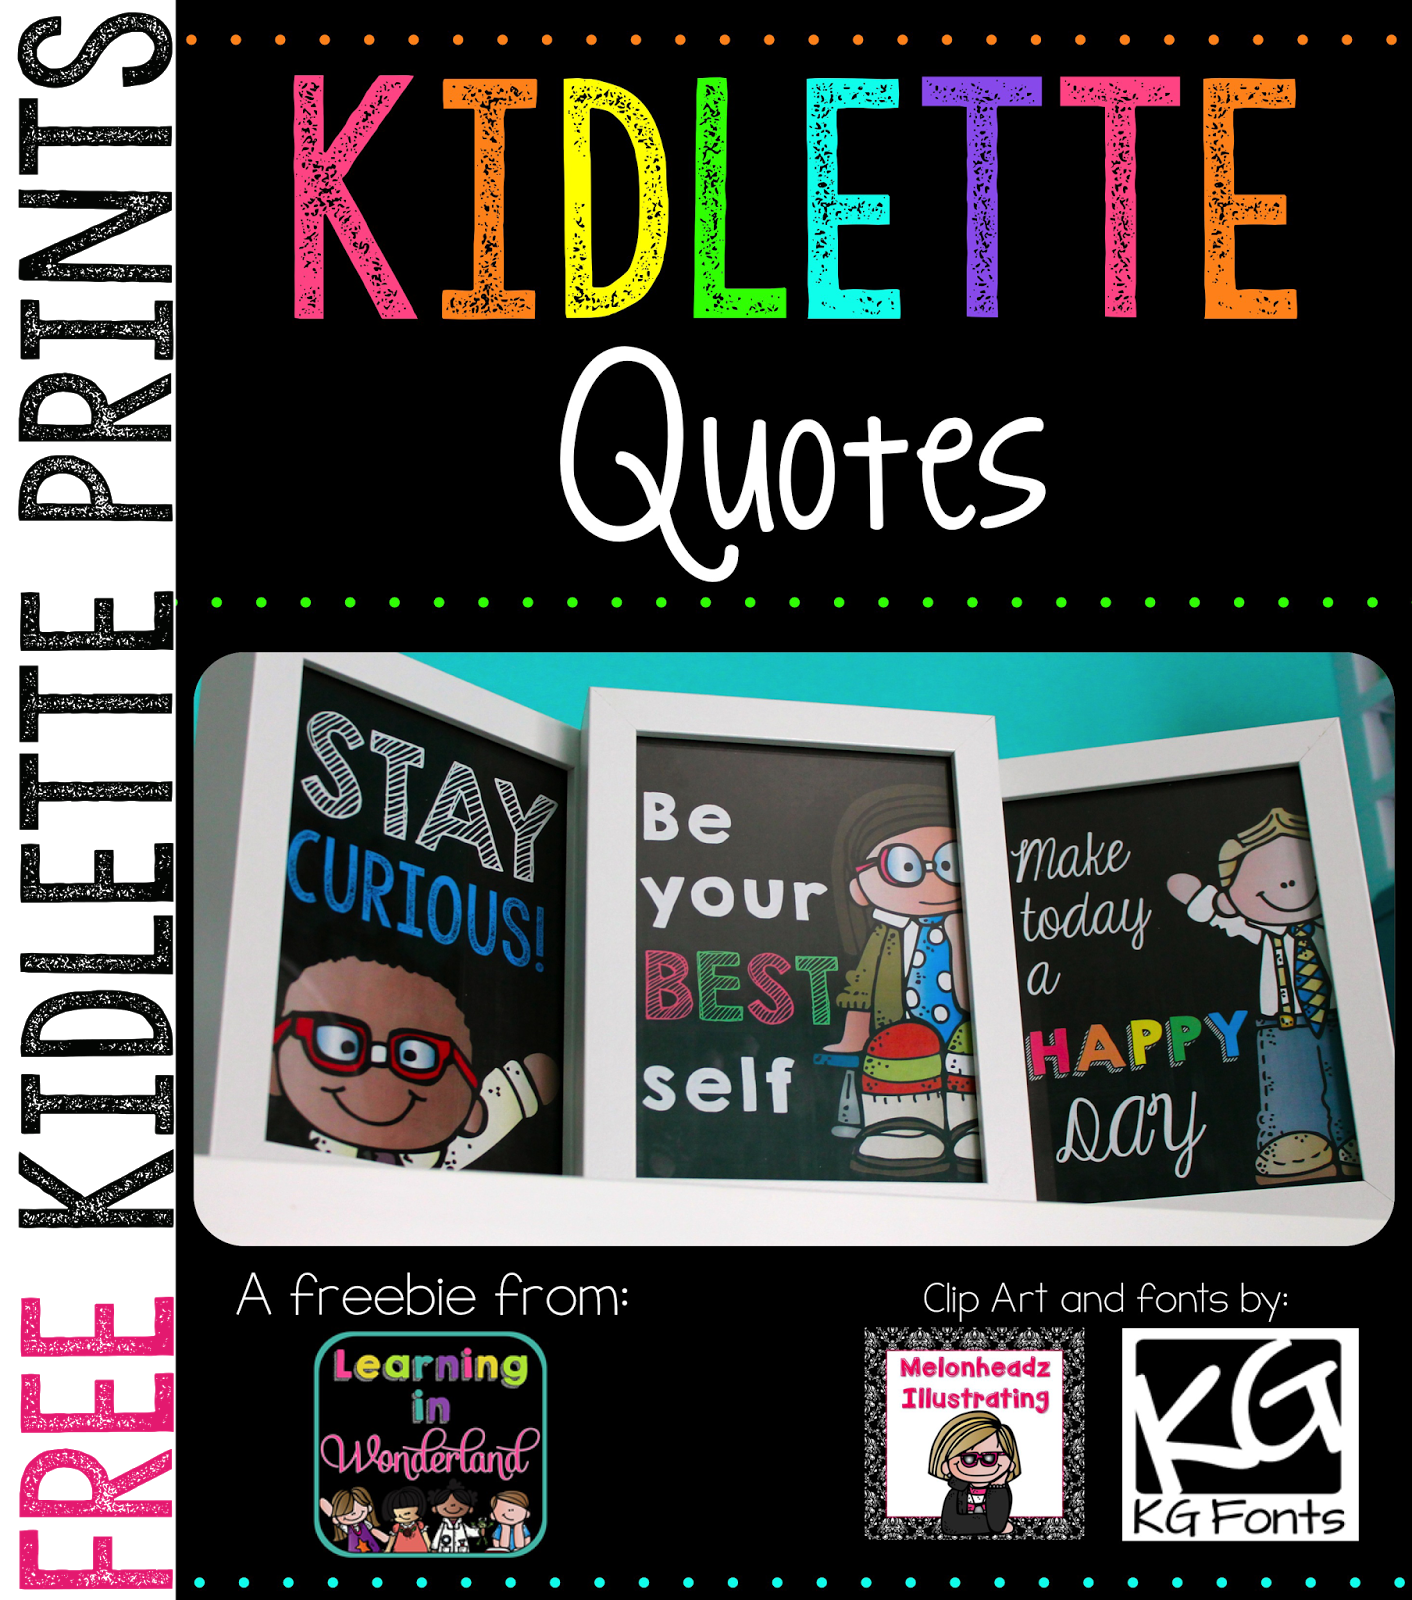 http://www.teacherspayteachers.com/Product/Kidlette-Quotes-Freebie-1349230